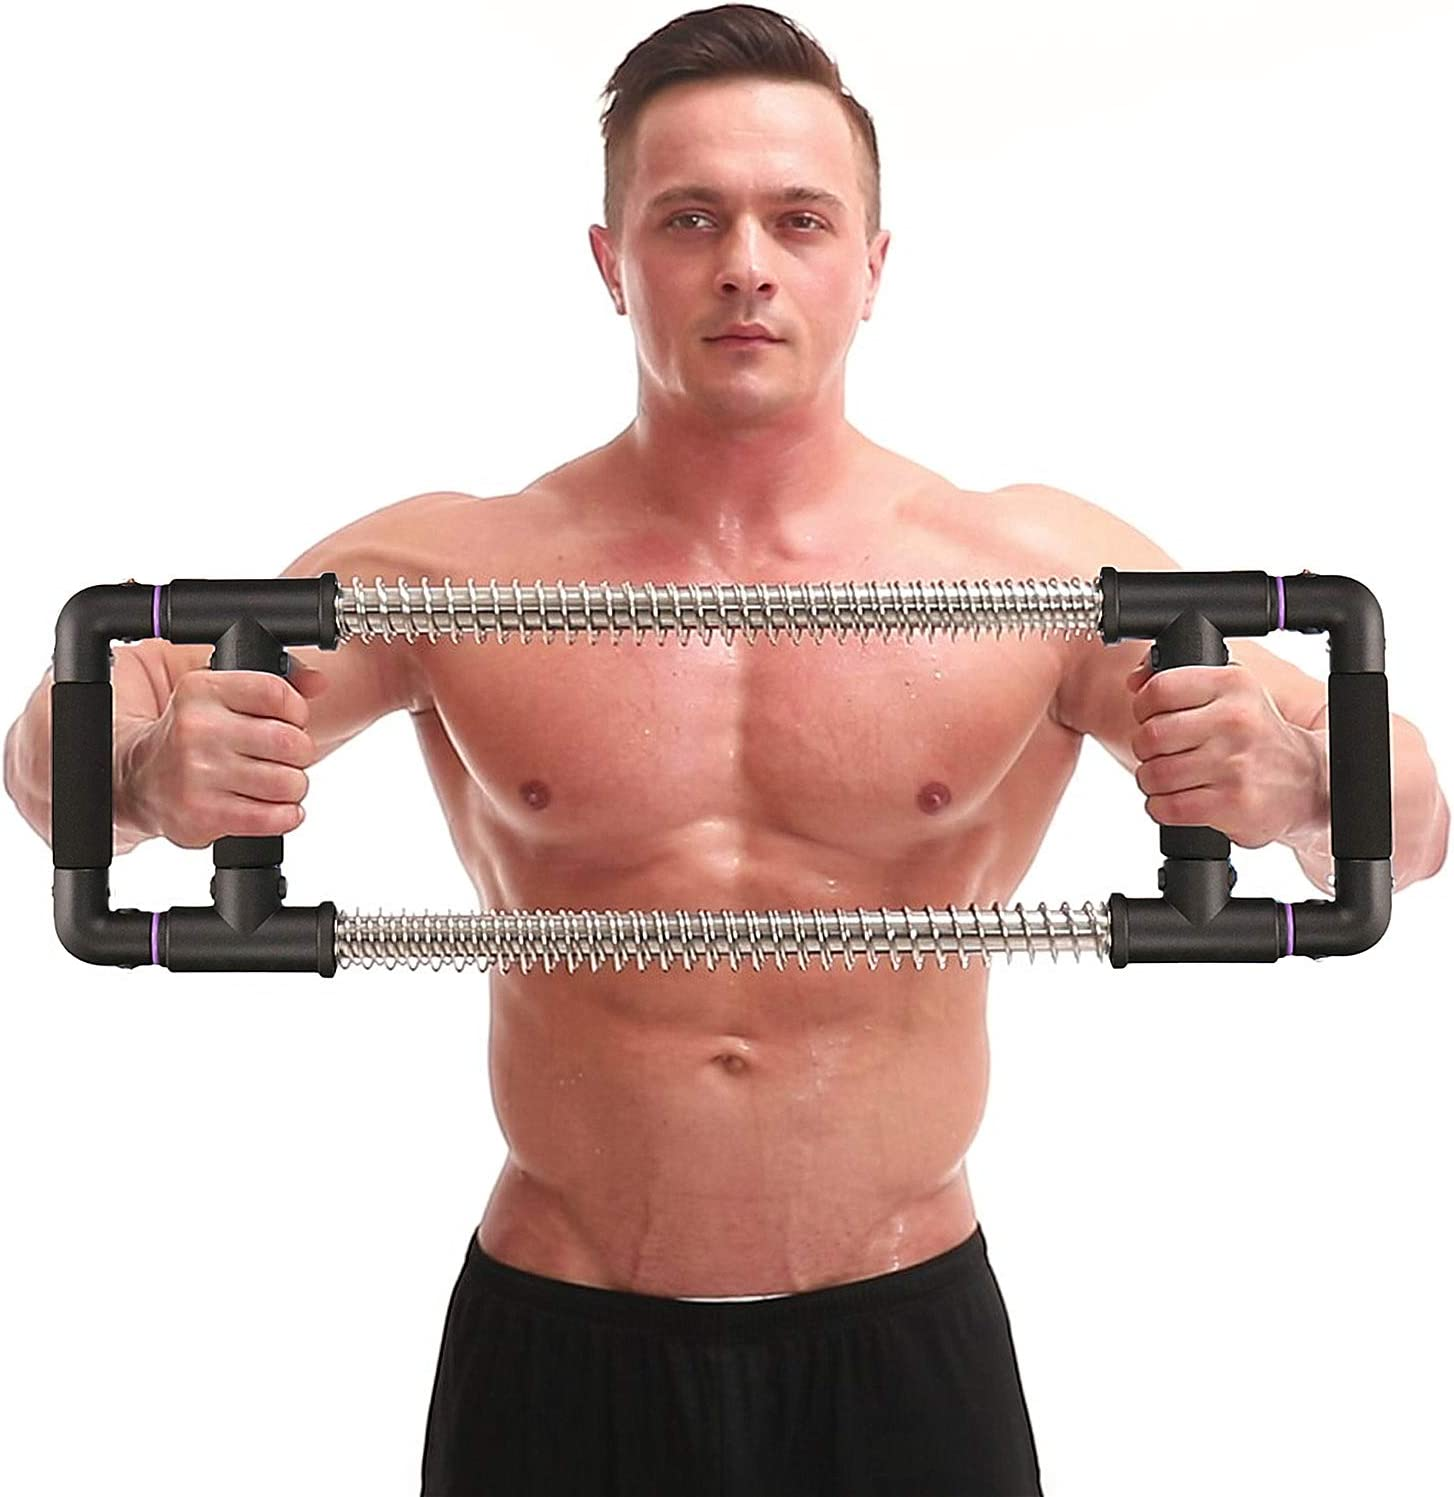 GoFitness Push Down Machine - Chest Expander Portable Gym Equipment for Exercise at Home, Office or Travel - Upper Body Workout: Build Muscle, Strength Training